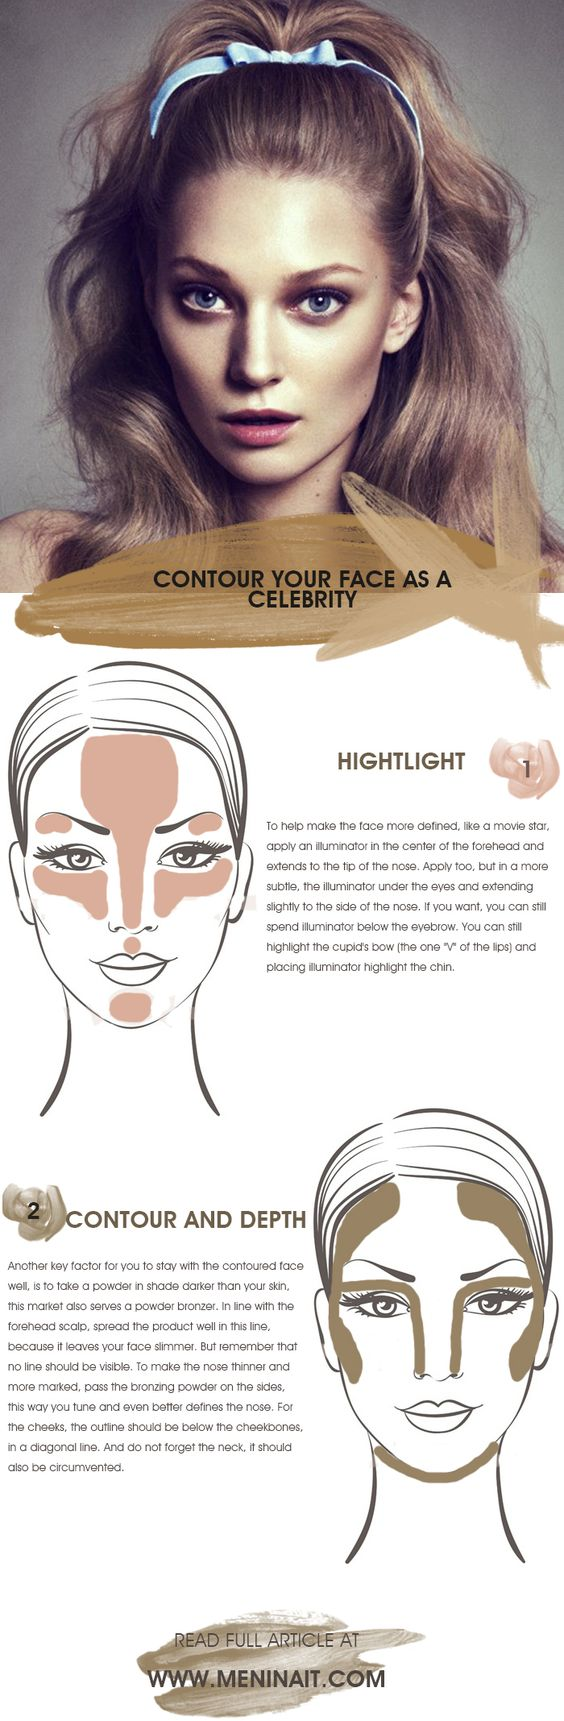 Contouring guide | Make-up : Contouring | Pinterest ...